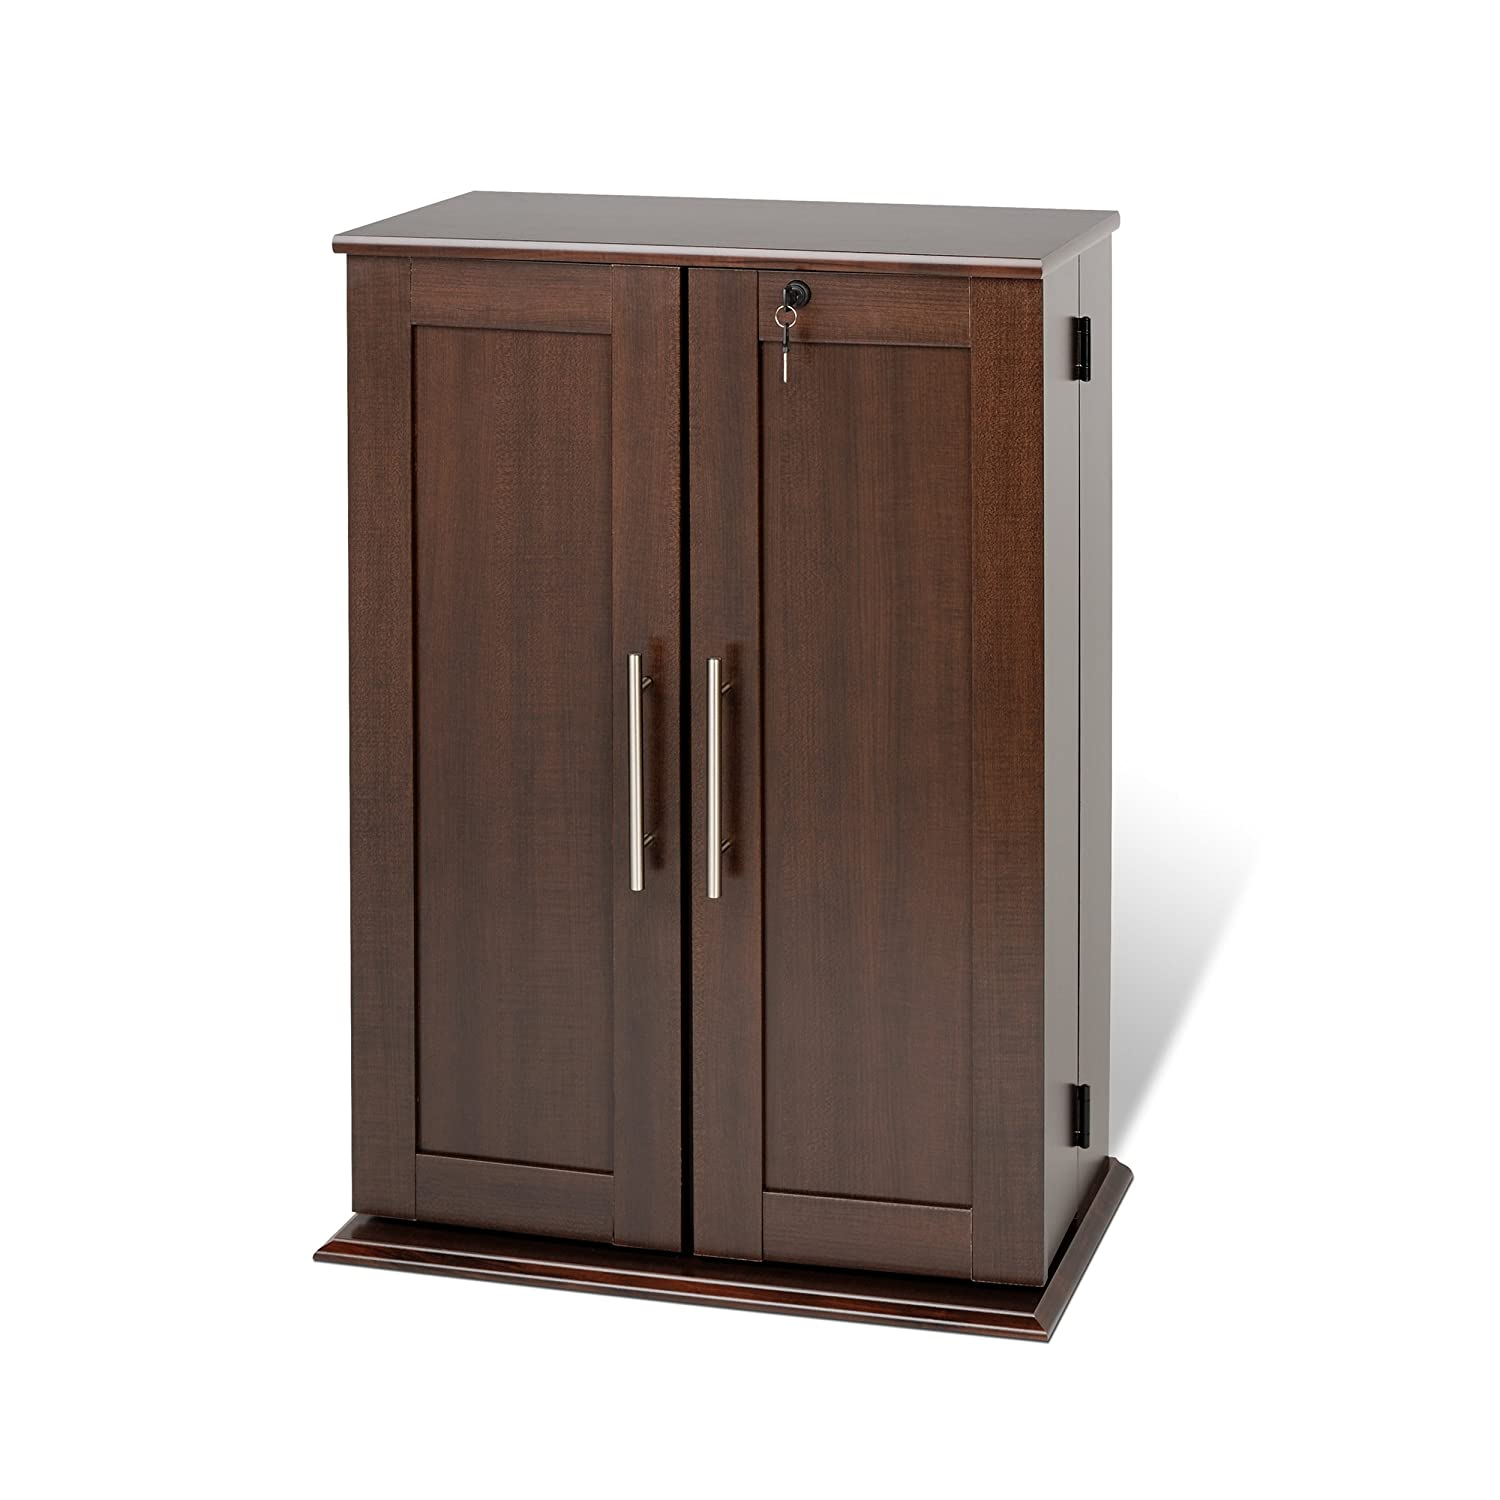 Lockable Dvd Storage Cabinet Amazoncom Espresso Locking Media Storage Cabinet With Shaker